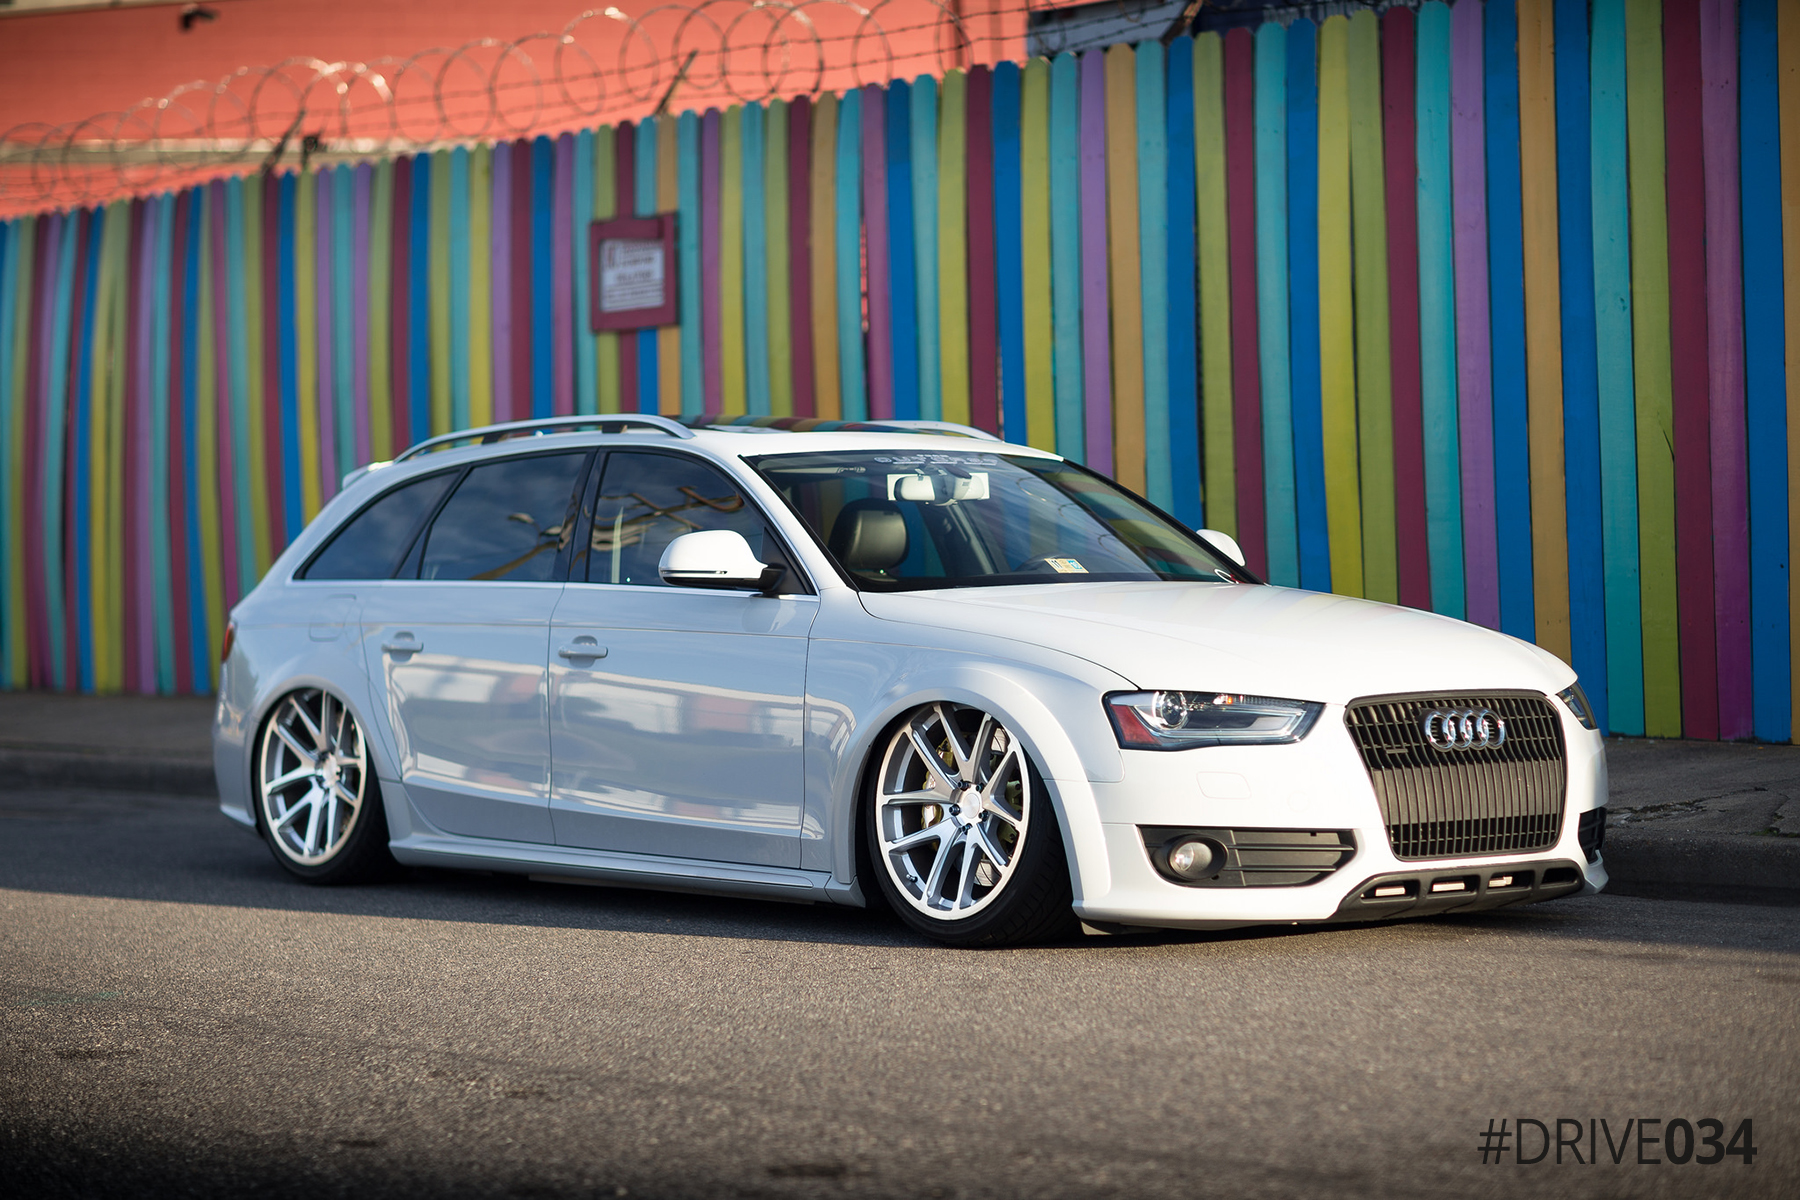 Bagged B8.5 Audi Allroad with 034Motorsport Drivetrain Upgrades